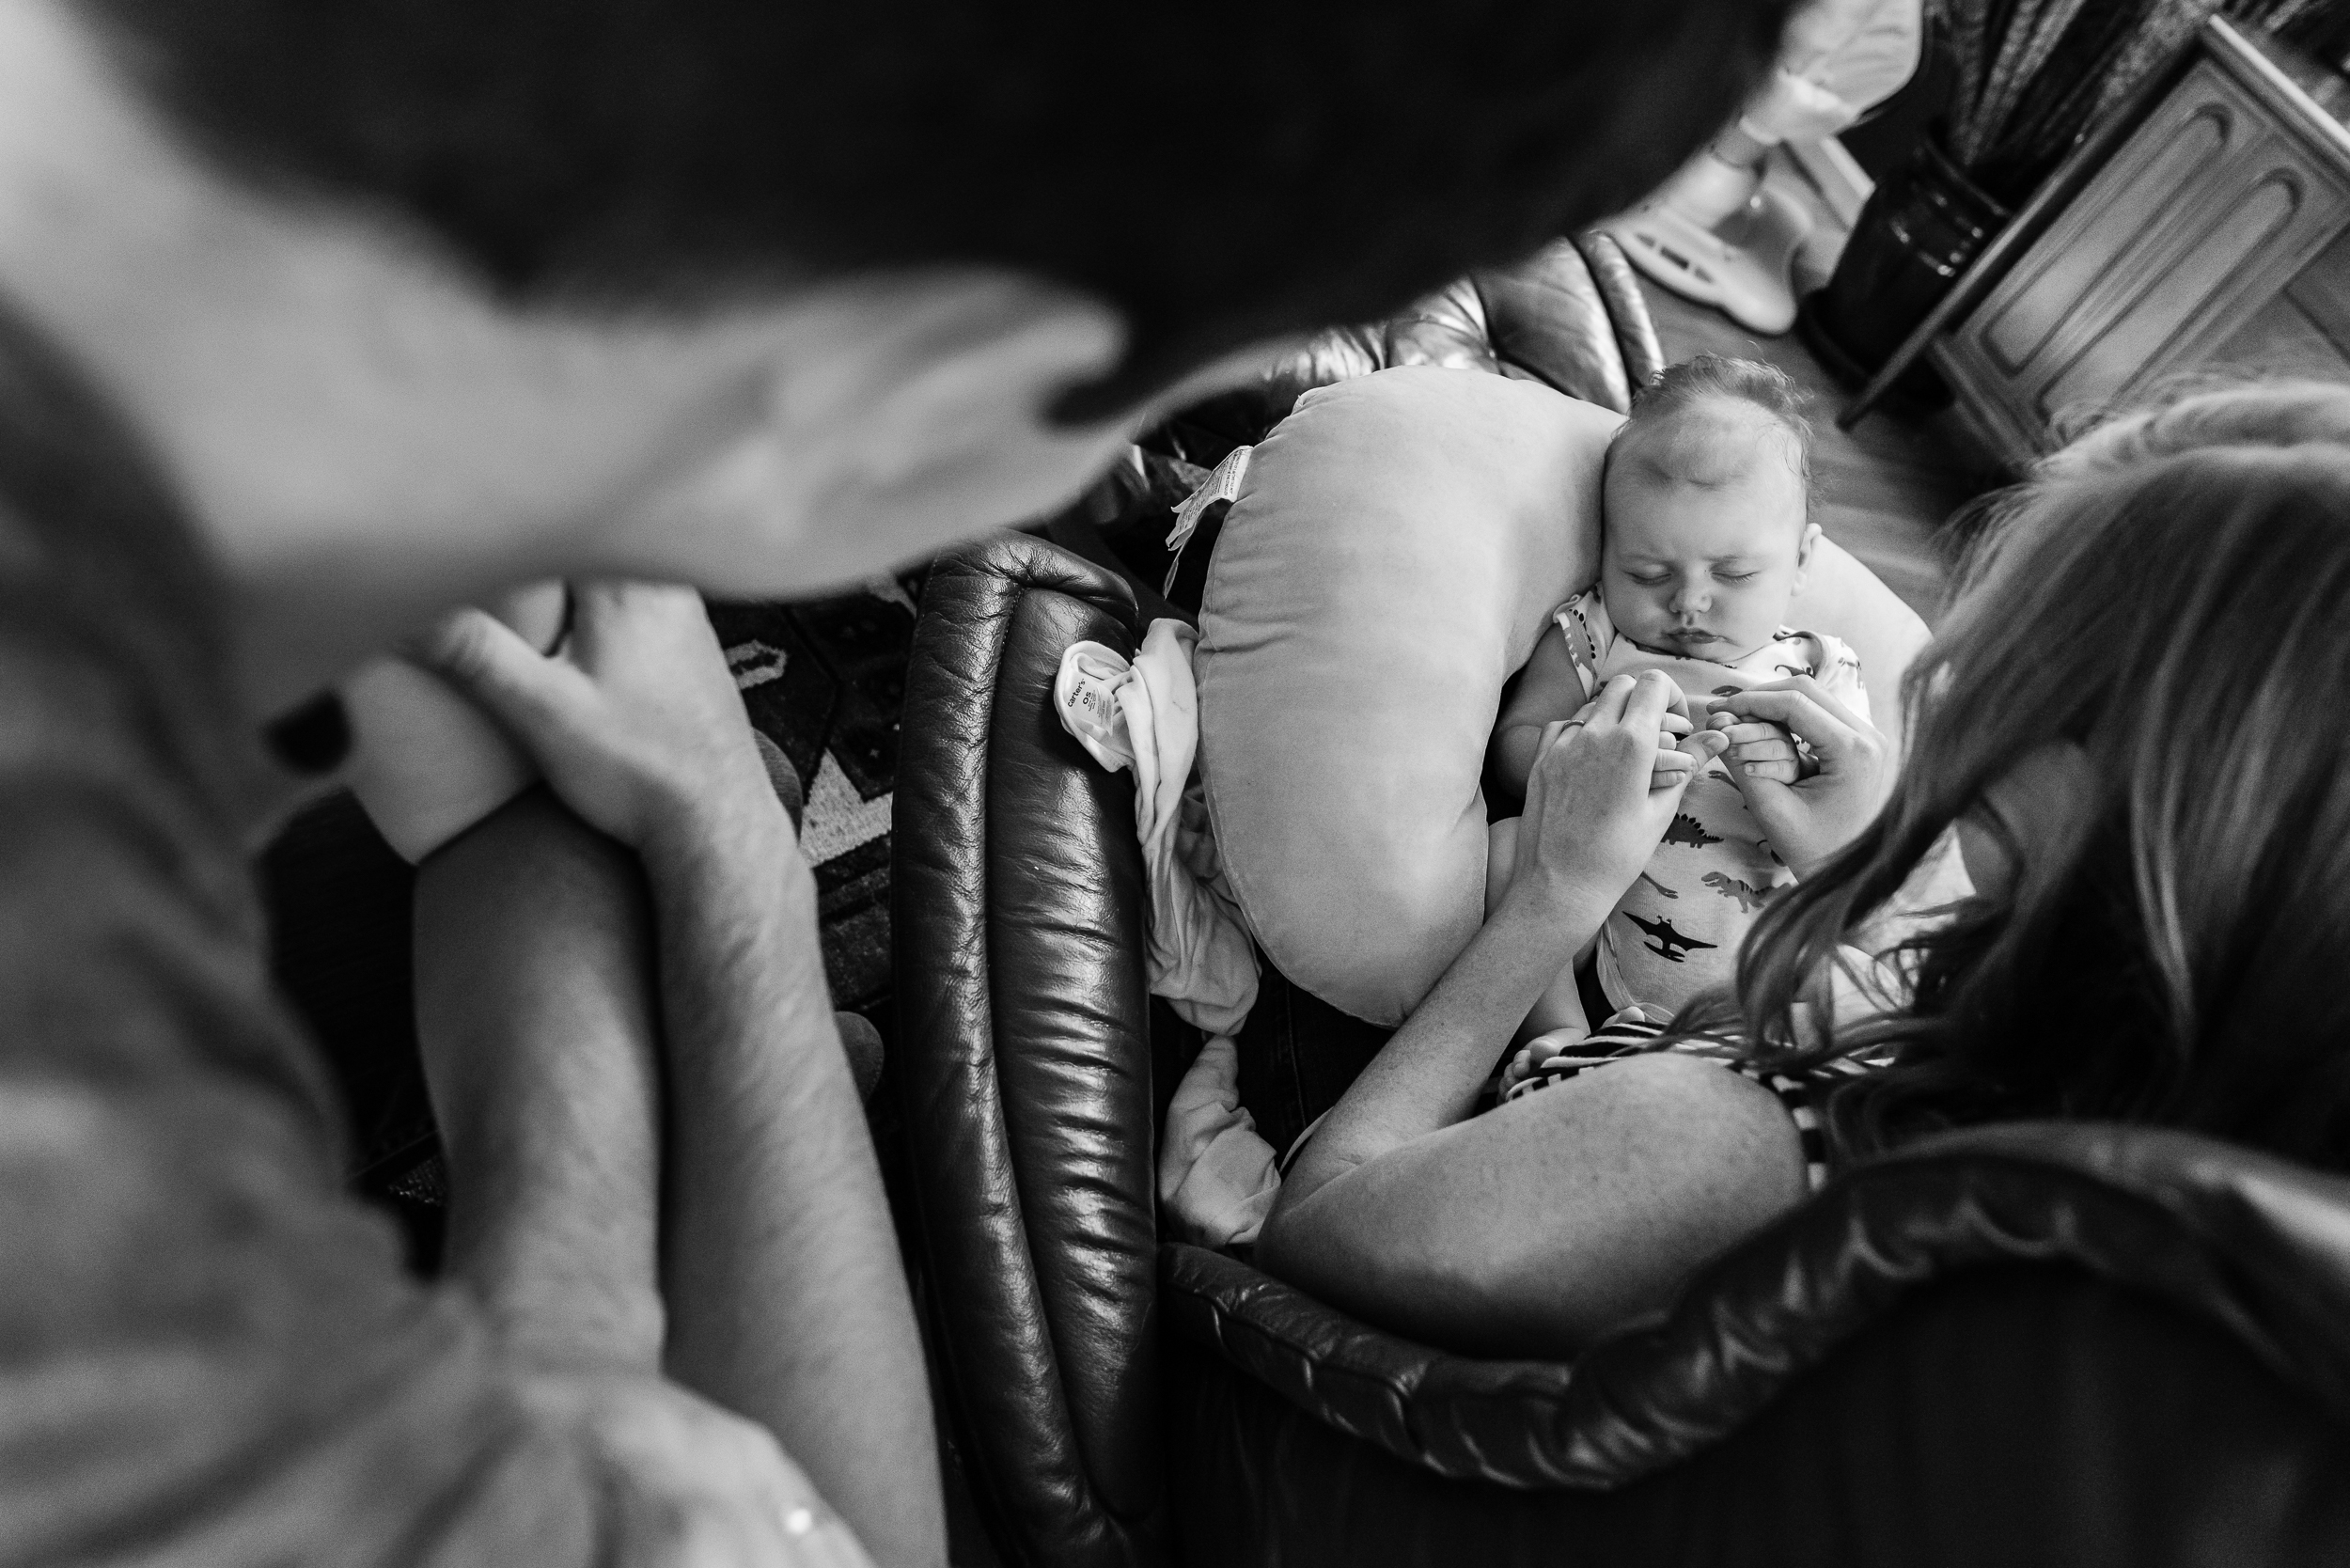 Looking over Dad's shoulder looking at new baby by Northern Virginia Family Photographer Nicole Sanchez